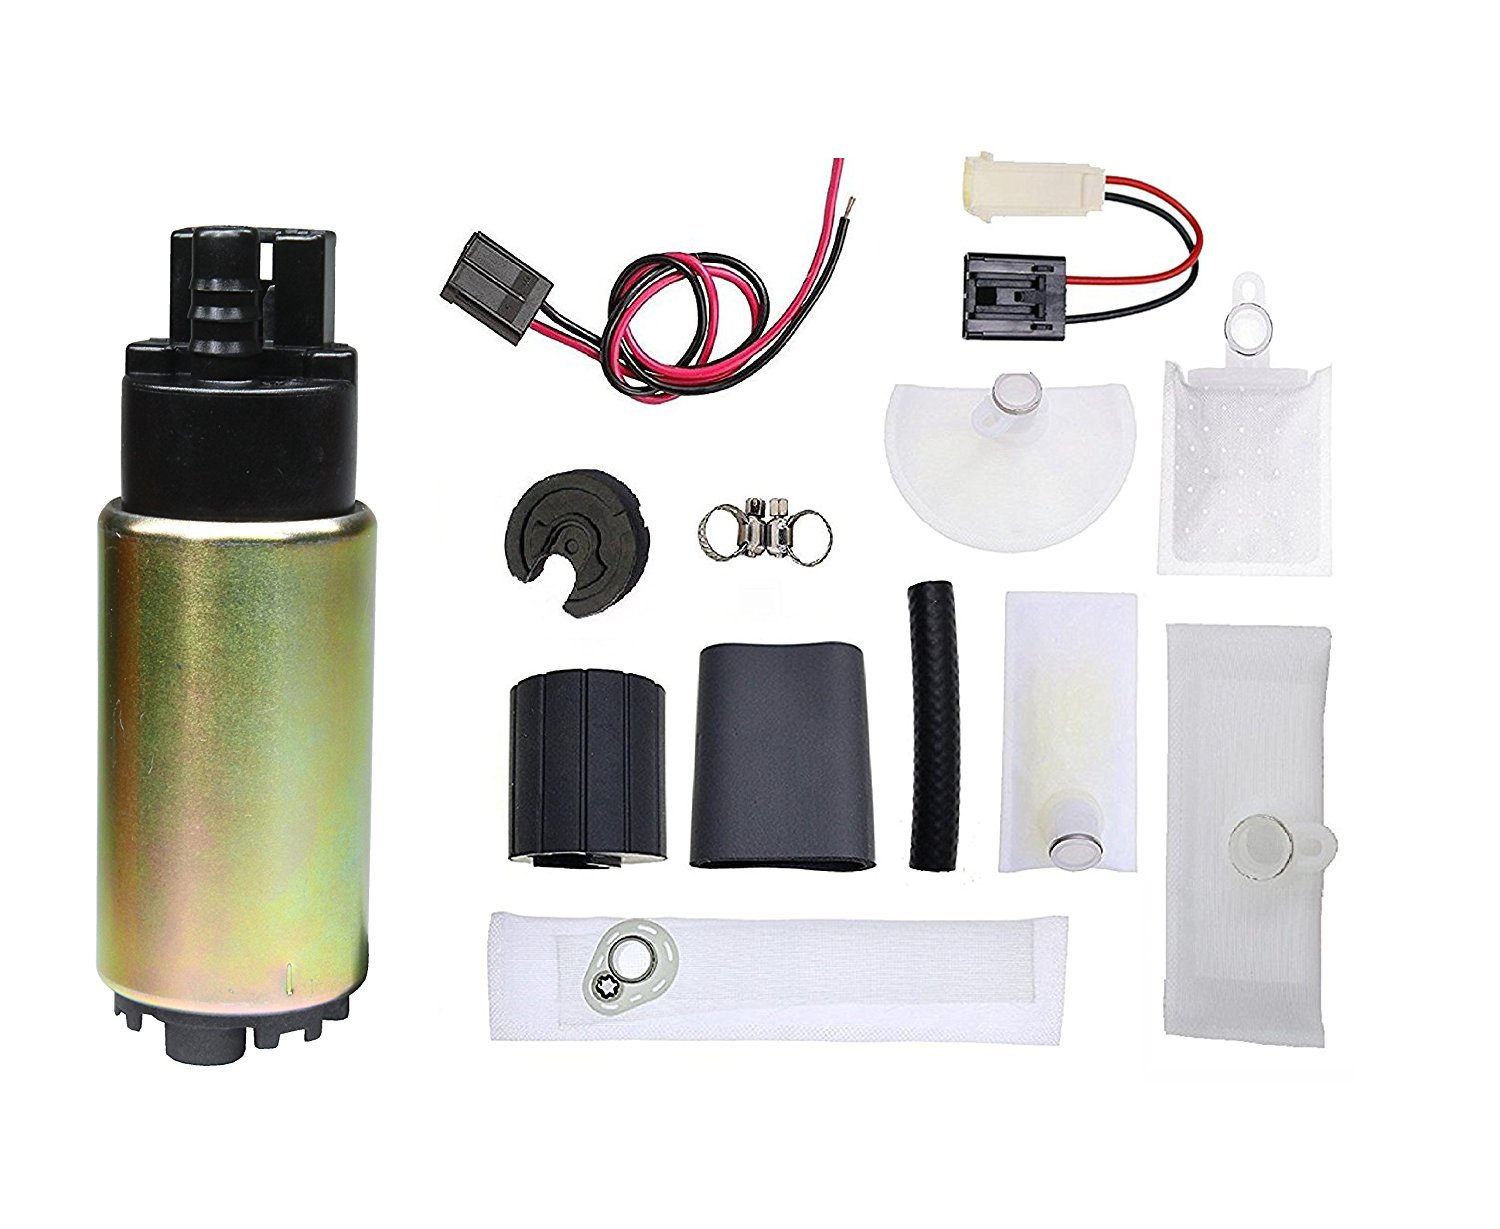 TOPSCOPE FP388336-12V Universal Electric Fuel Pump Installation Kit with strainer